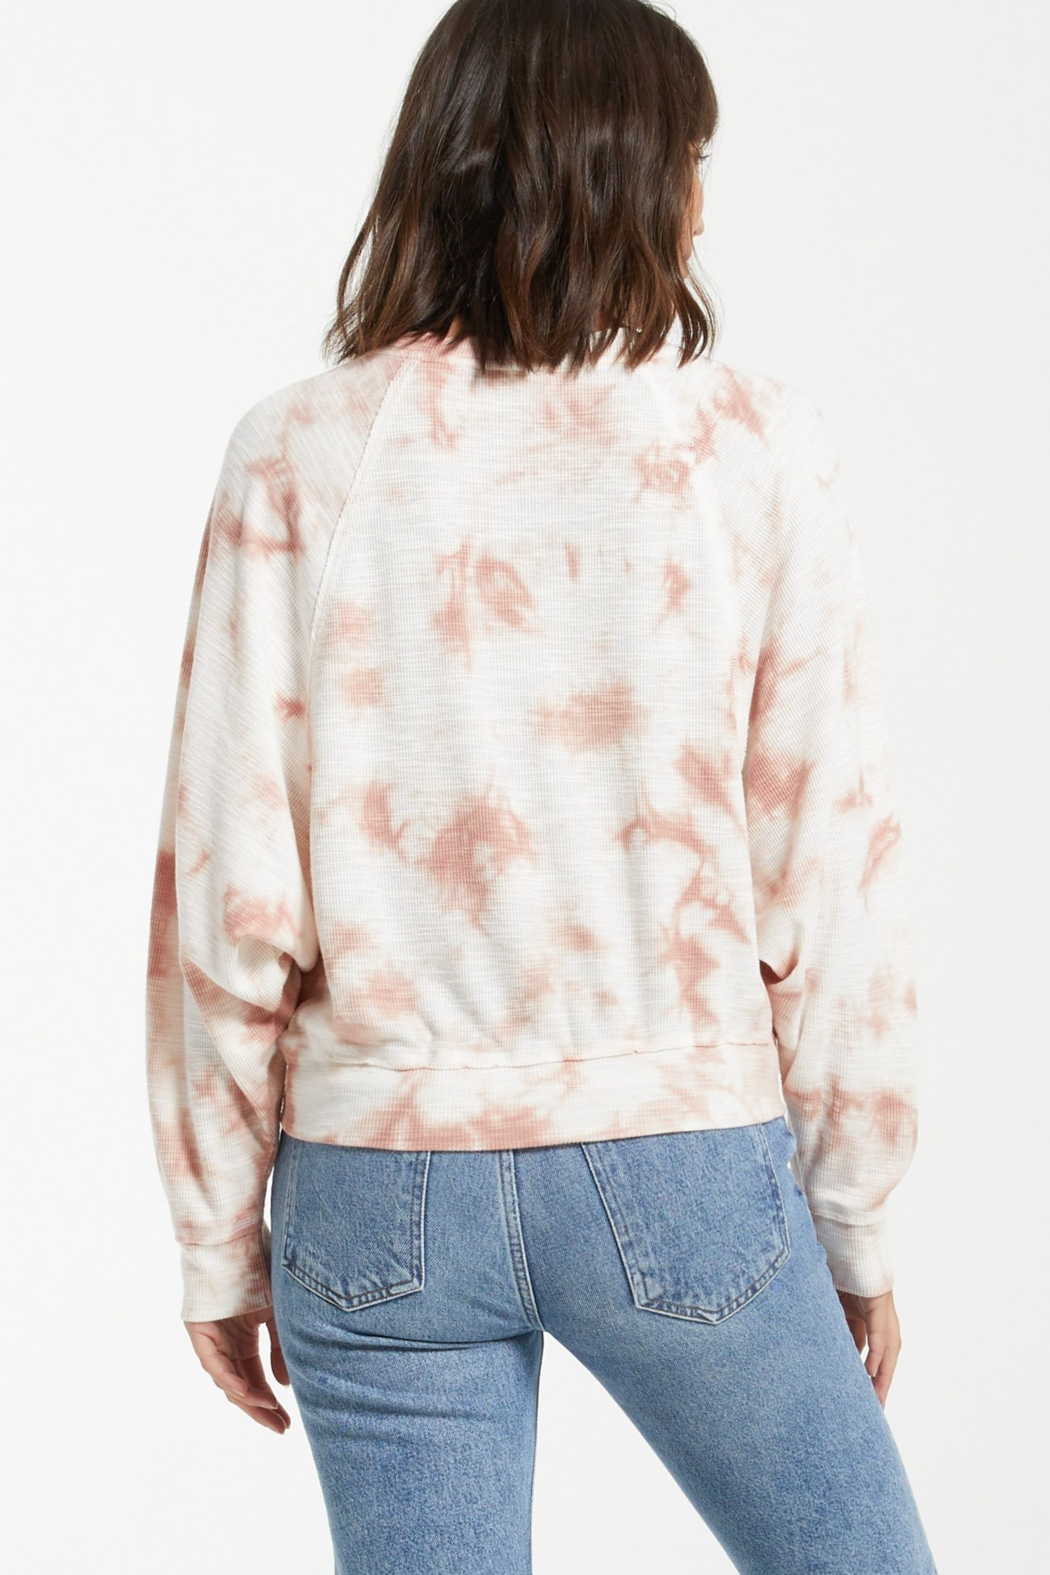 z supply Claire Cloud Tie-Dye Top - Back Cropped Image